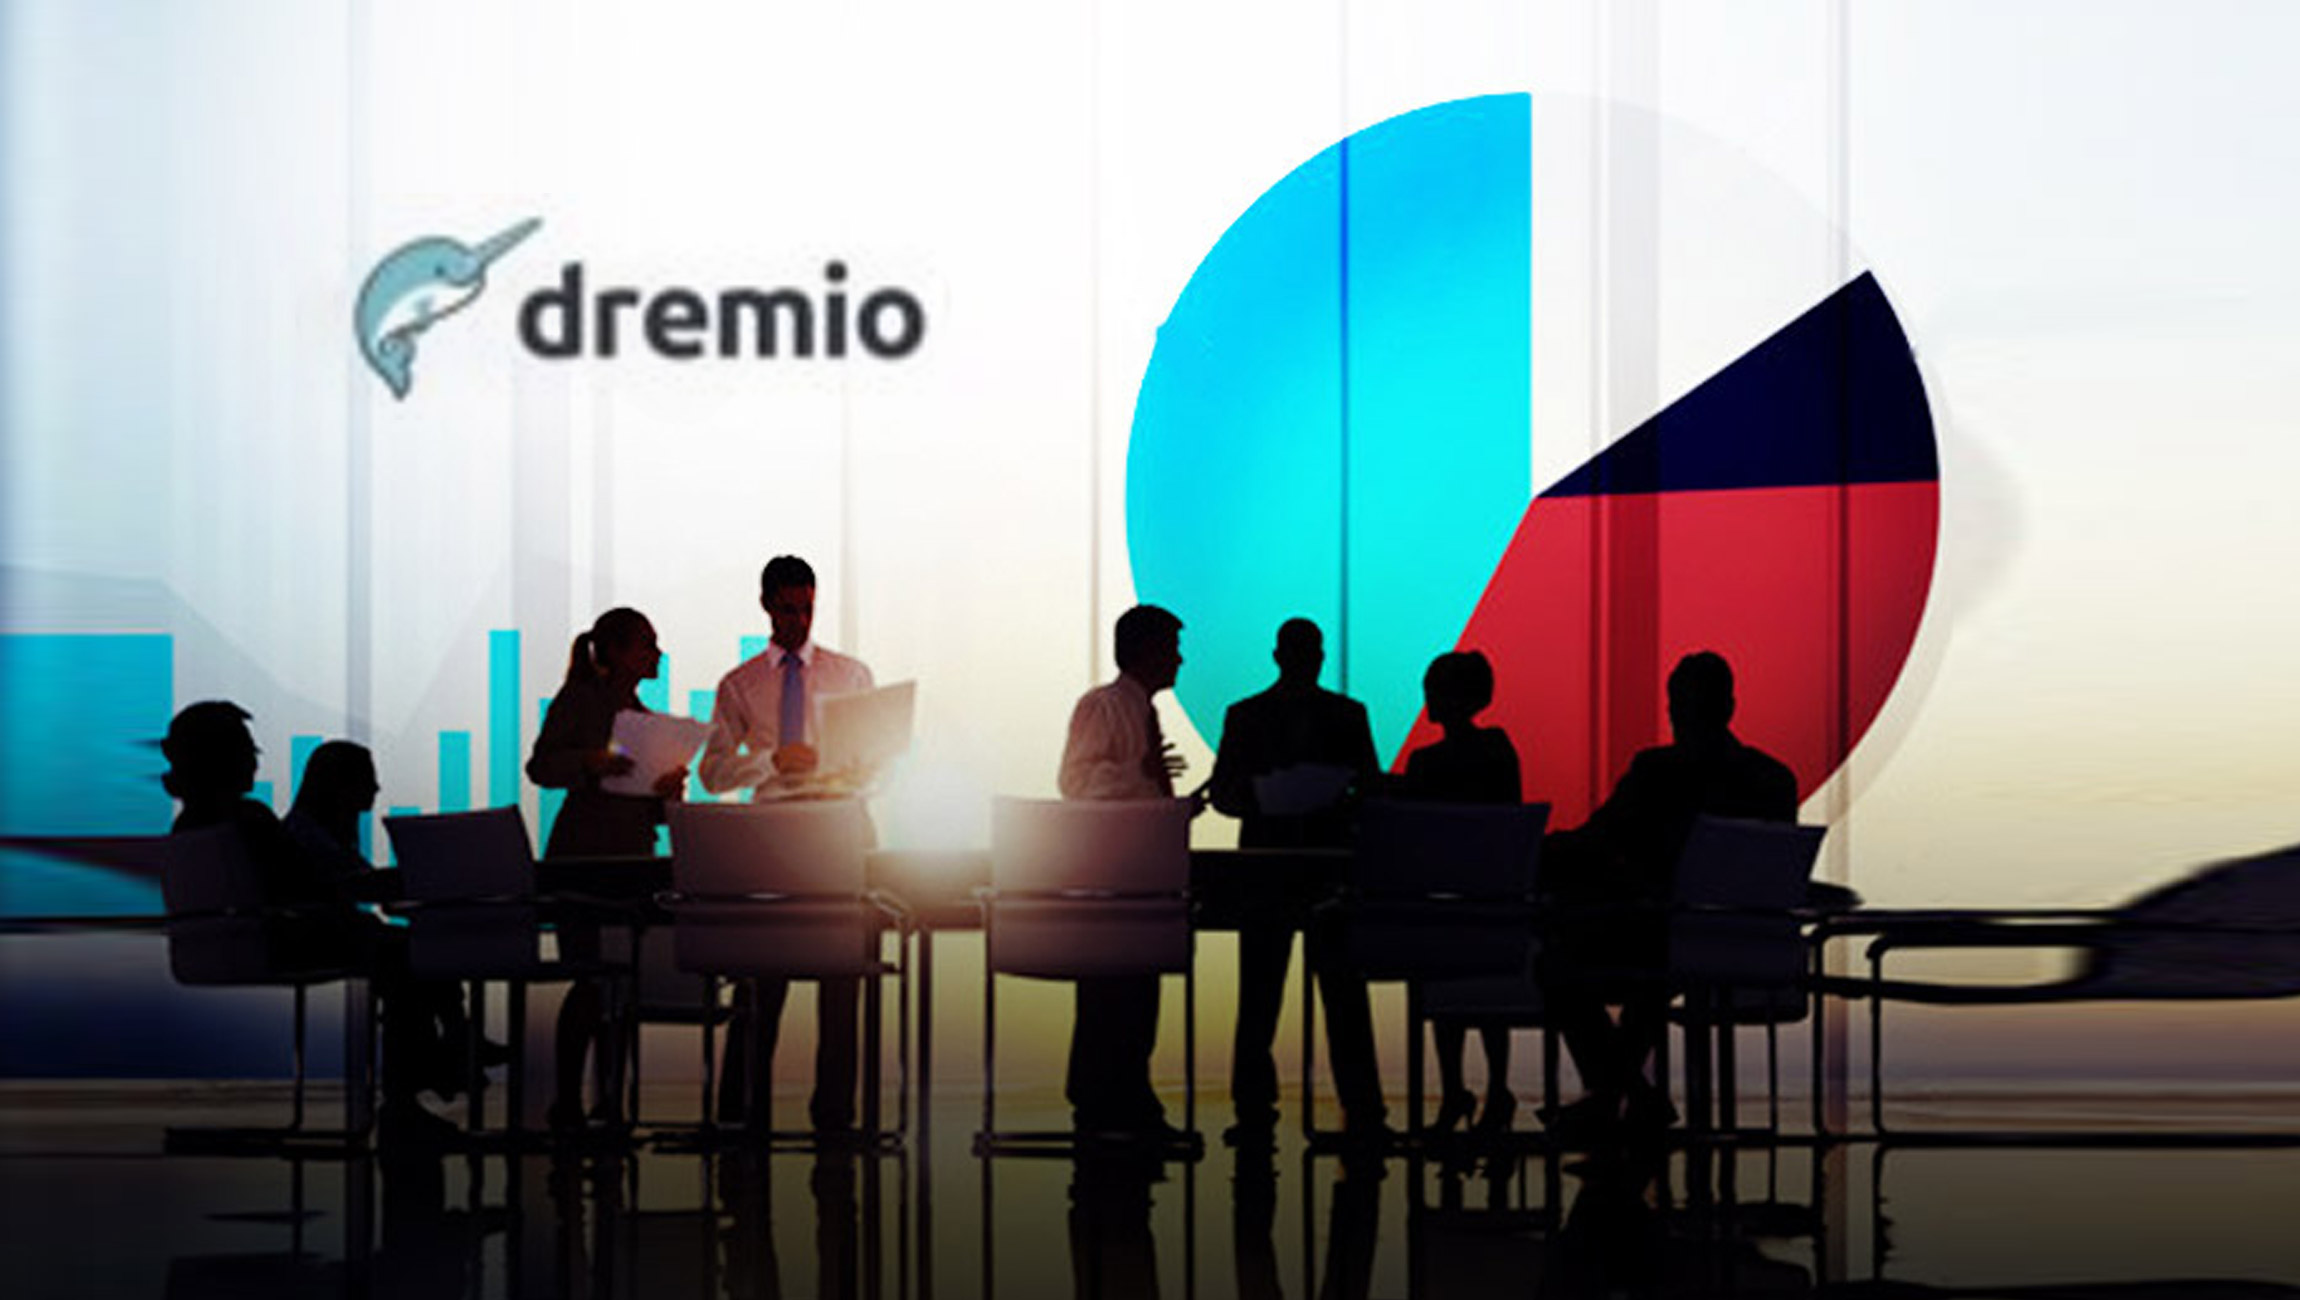 Dremio-Launches-the-Industry's-First-SQL-Lakehouse-Service-to-Accelerate-BI-and-Analytics